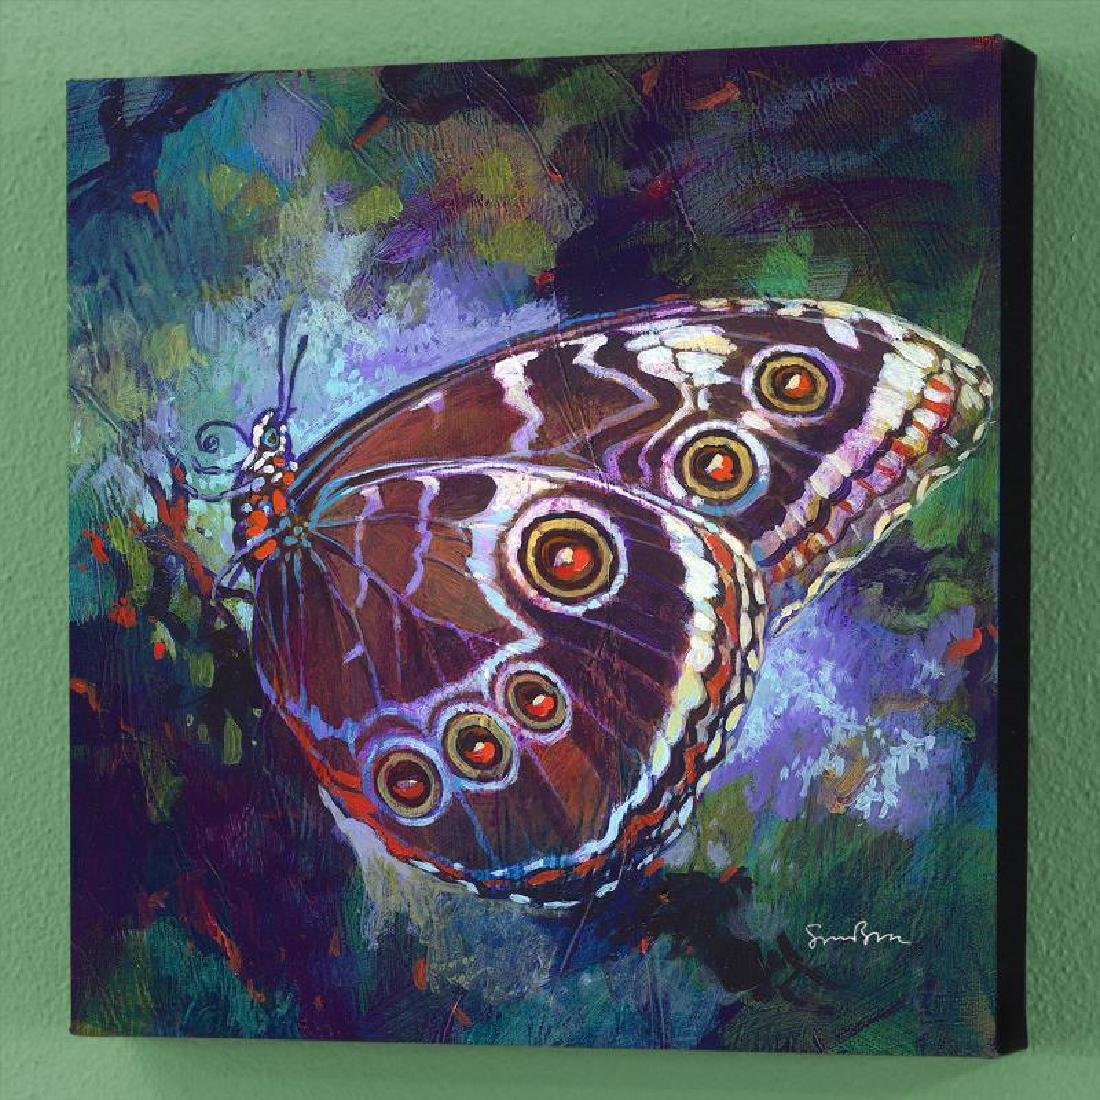 Verdigris Limited Edition Giclee on Canvas by Simon